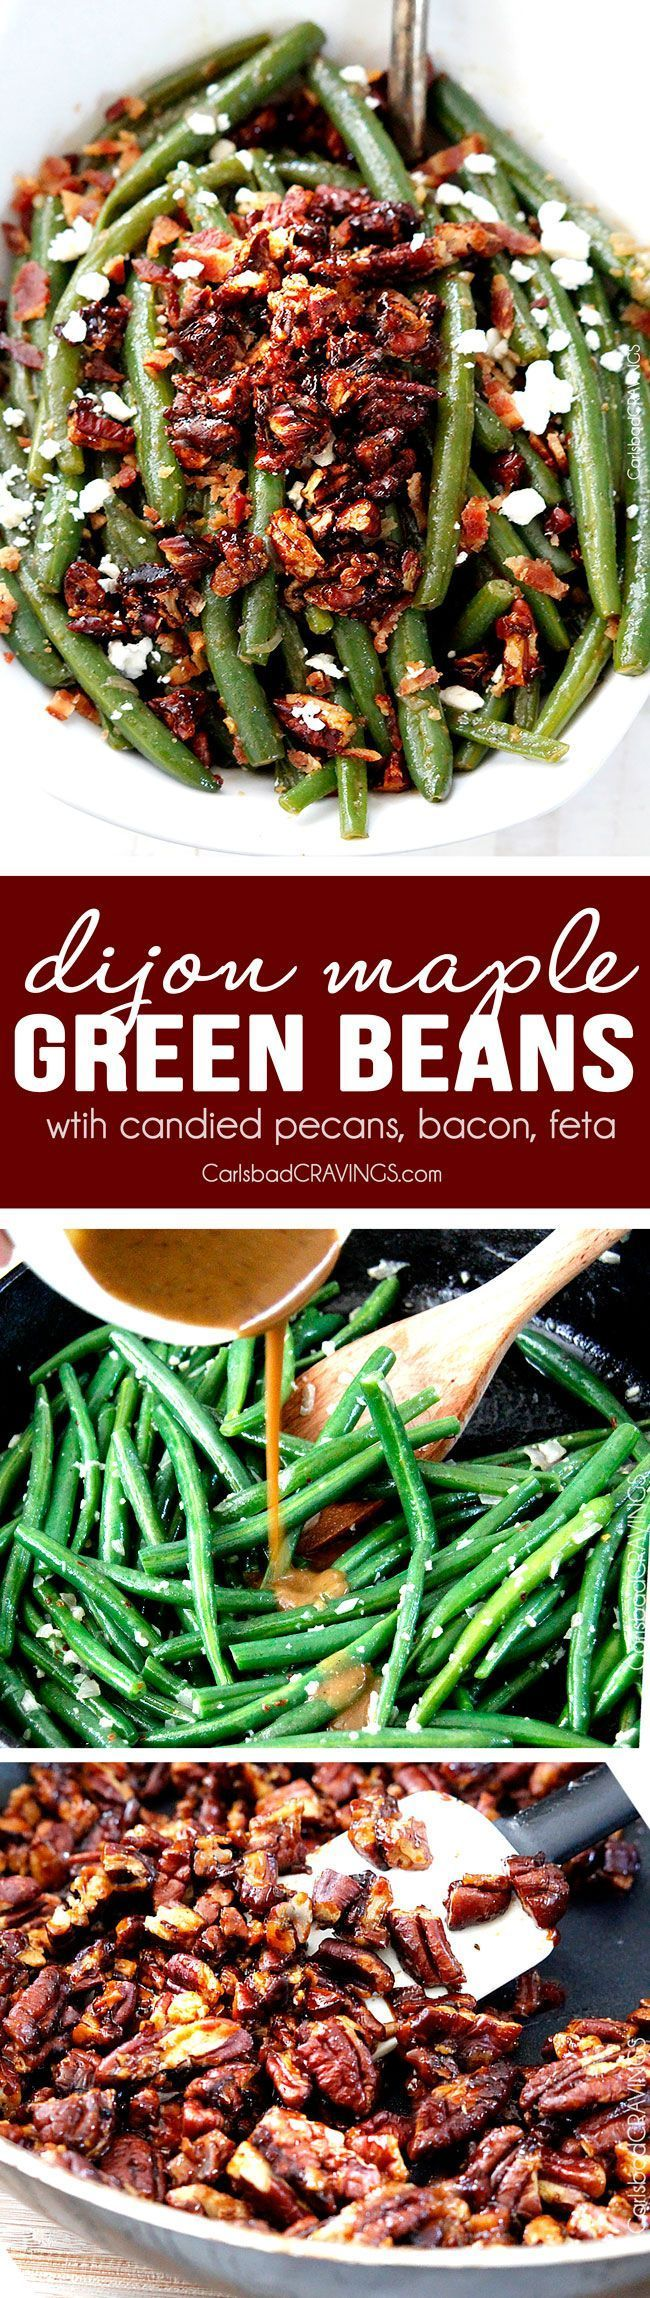 """Dijon Maple Green Beans with Caramelized Pecans, Bacon and Feta   these aren't your grandmother's green beans! Tangy, salty, sweet, crunchy, crispy, creamy AKA, """"the best green beans ever."""" Not just for Thanksgiving but a year round company pleasing, delicious side. #Thanksgivingside via @carlsbadcraving"""